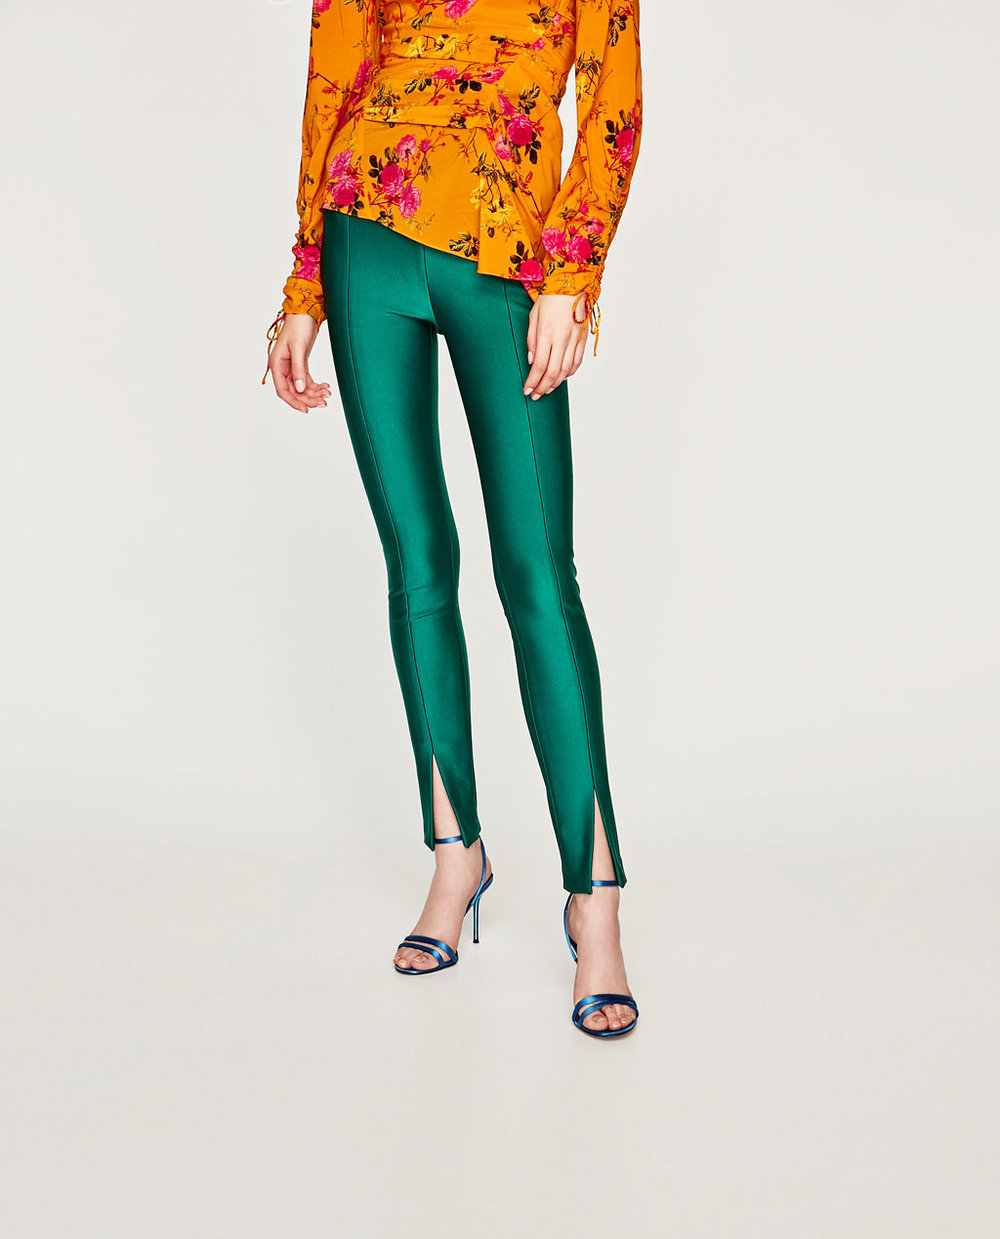 LEGGINGS WITH OPENING IN THE FRONT. Zara. $69.